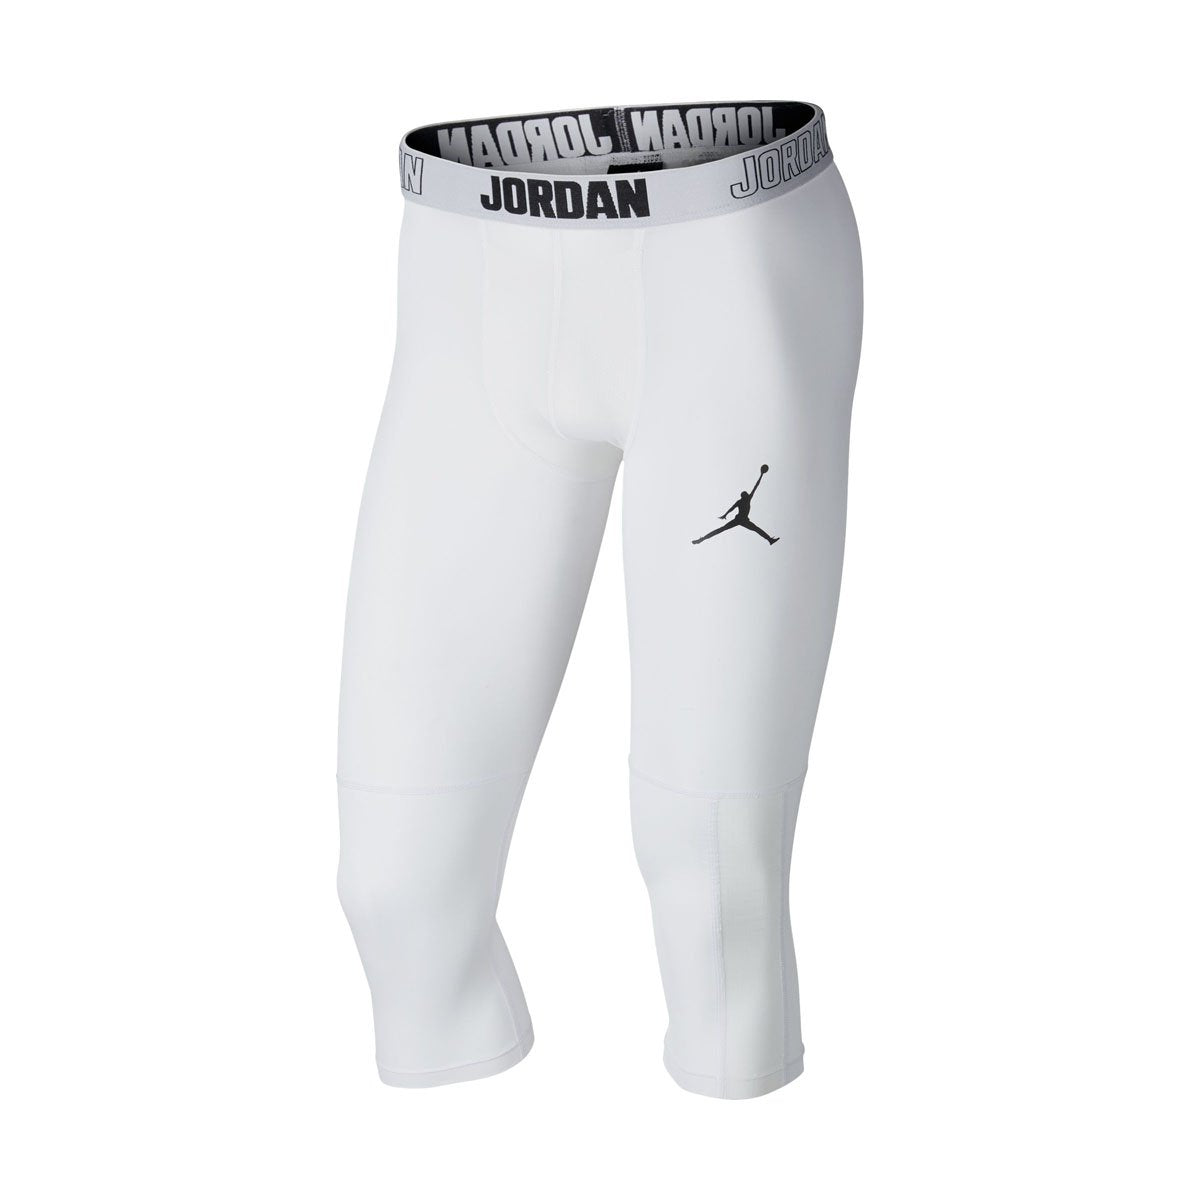 Jordan Dri-FIT 23 Alpha